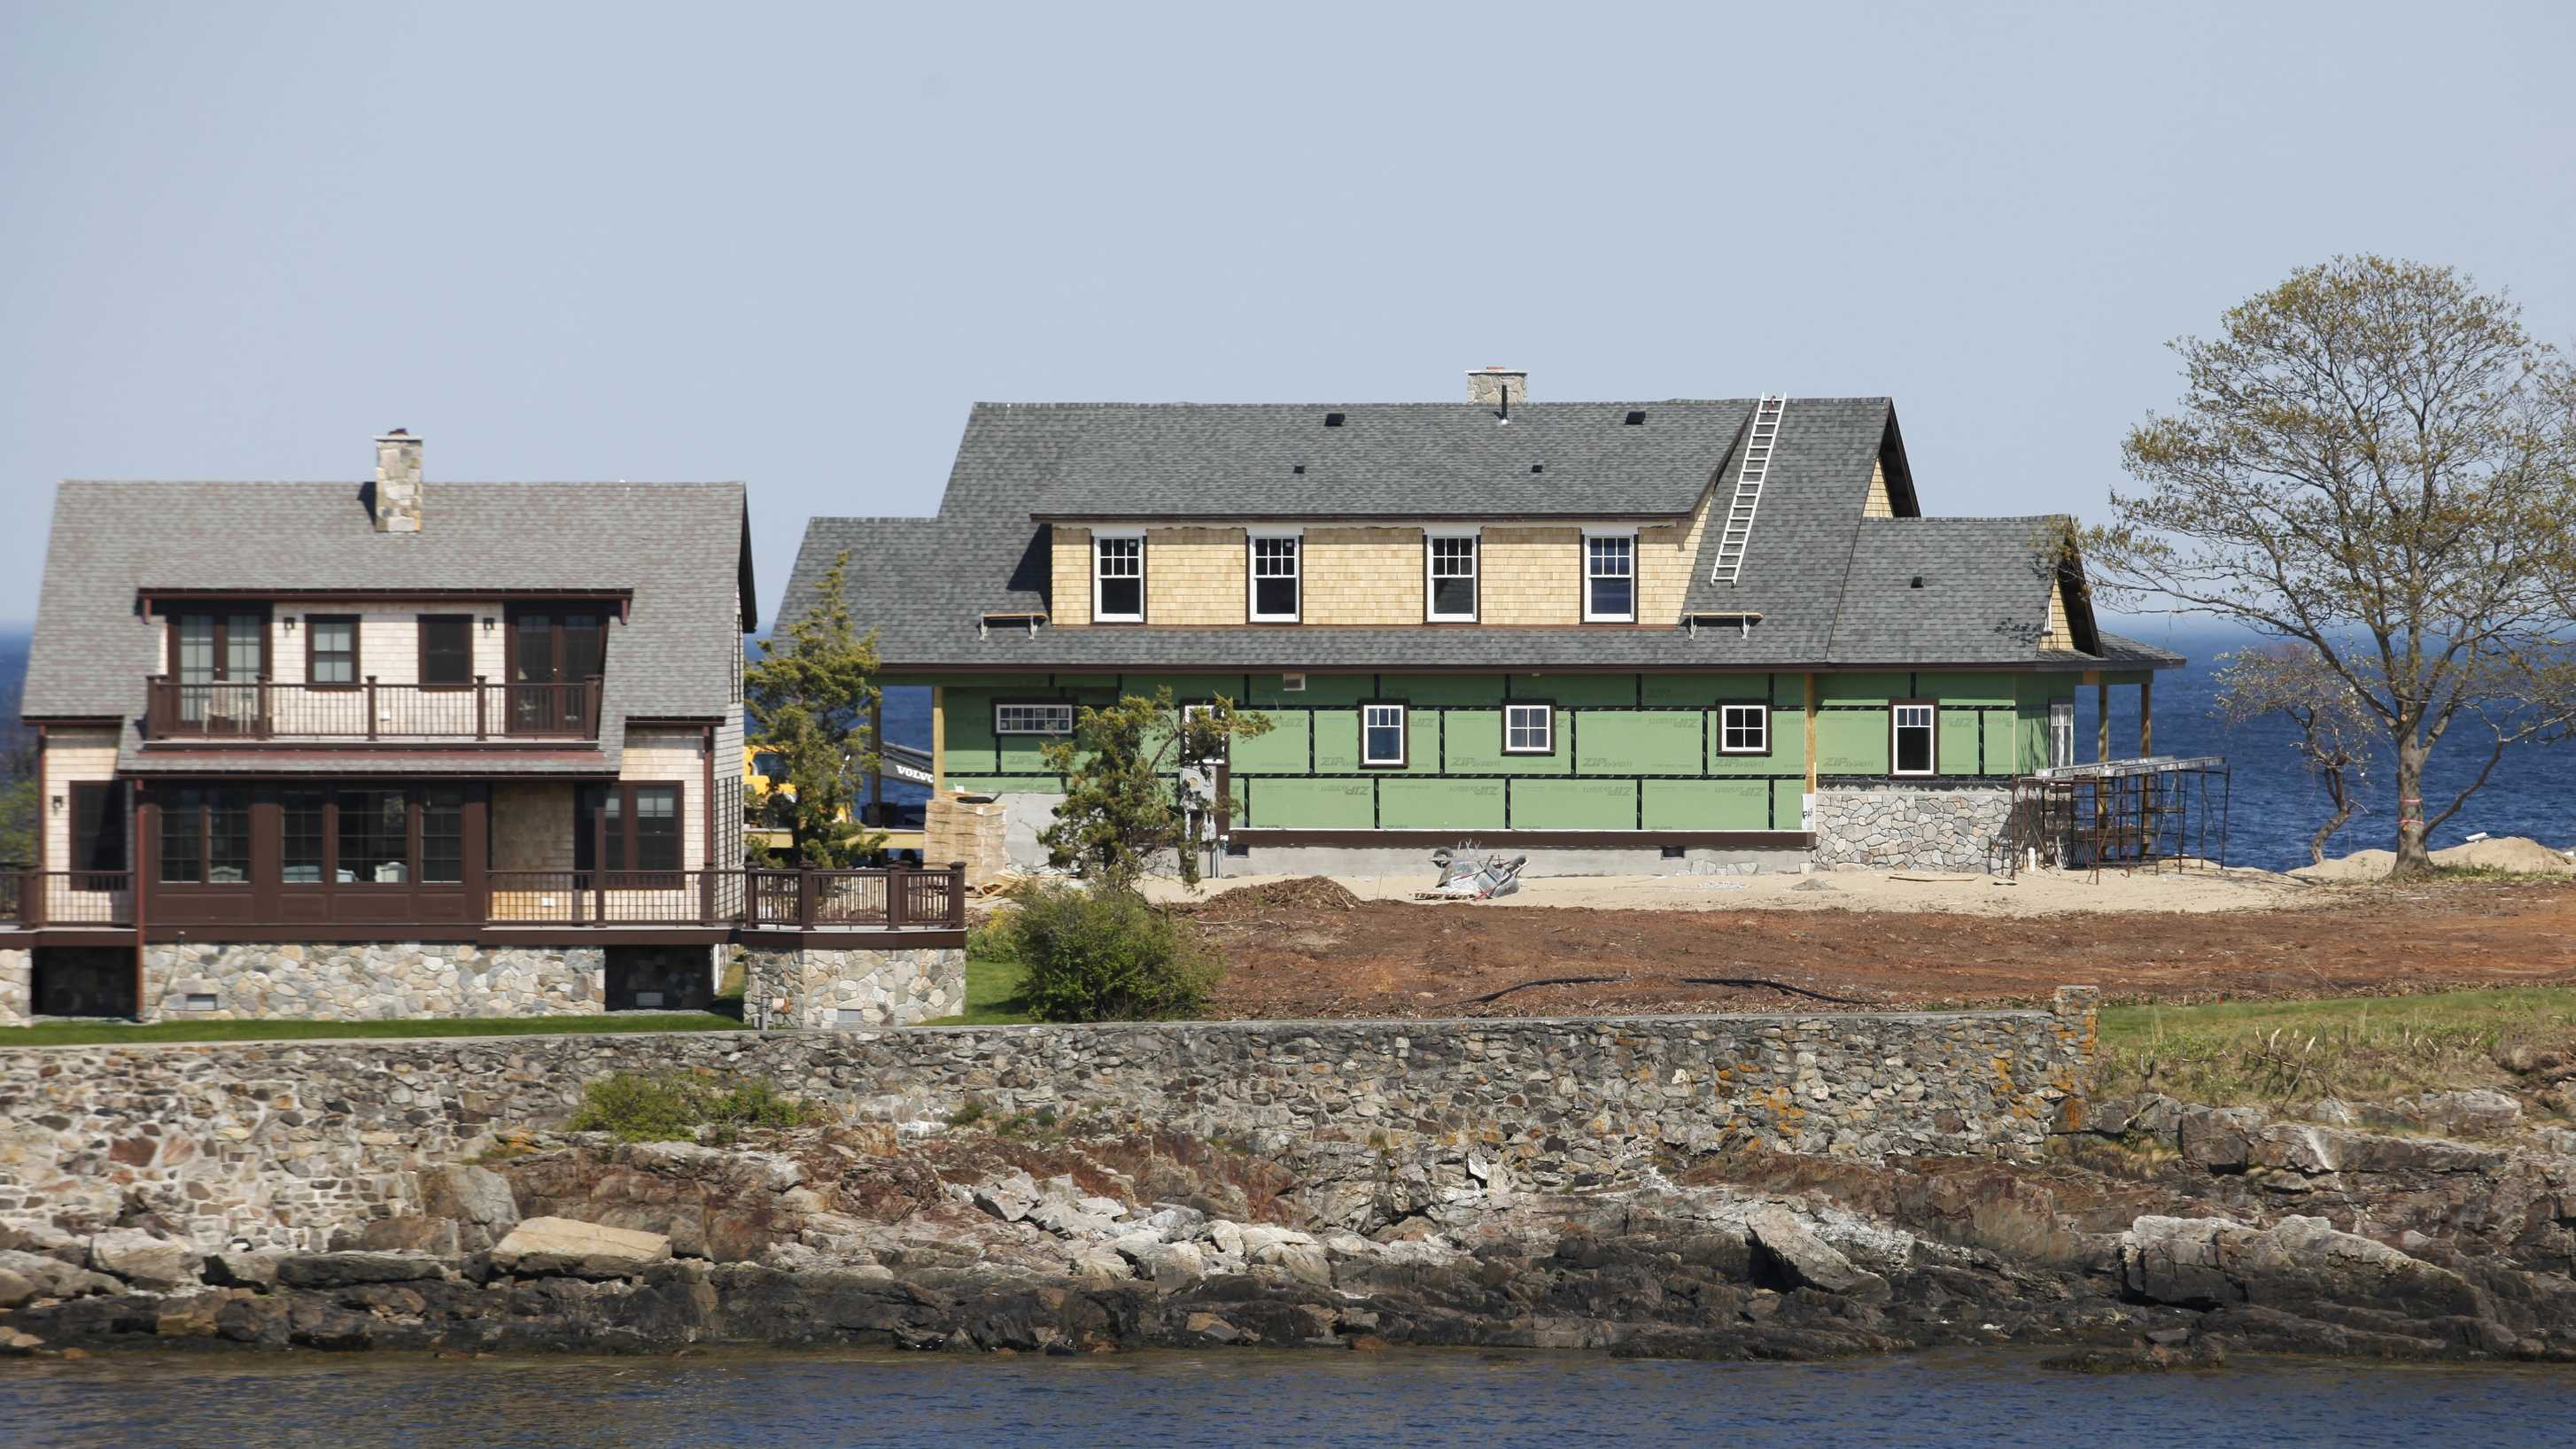 This May 24, 2015 photo shows former Florida Gov. Jeb Bush's vacation home under construction on Walker's Point in Kennebunkport, Maine. Bush is getting a house of his own at the family compound on the coast of Maine where generations of Bushes have spent summers.